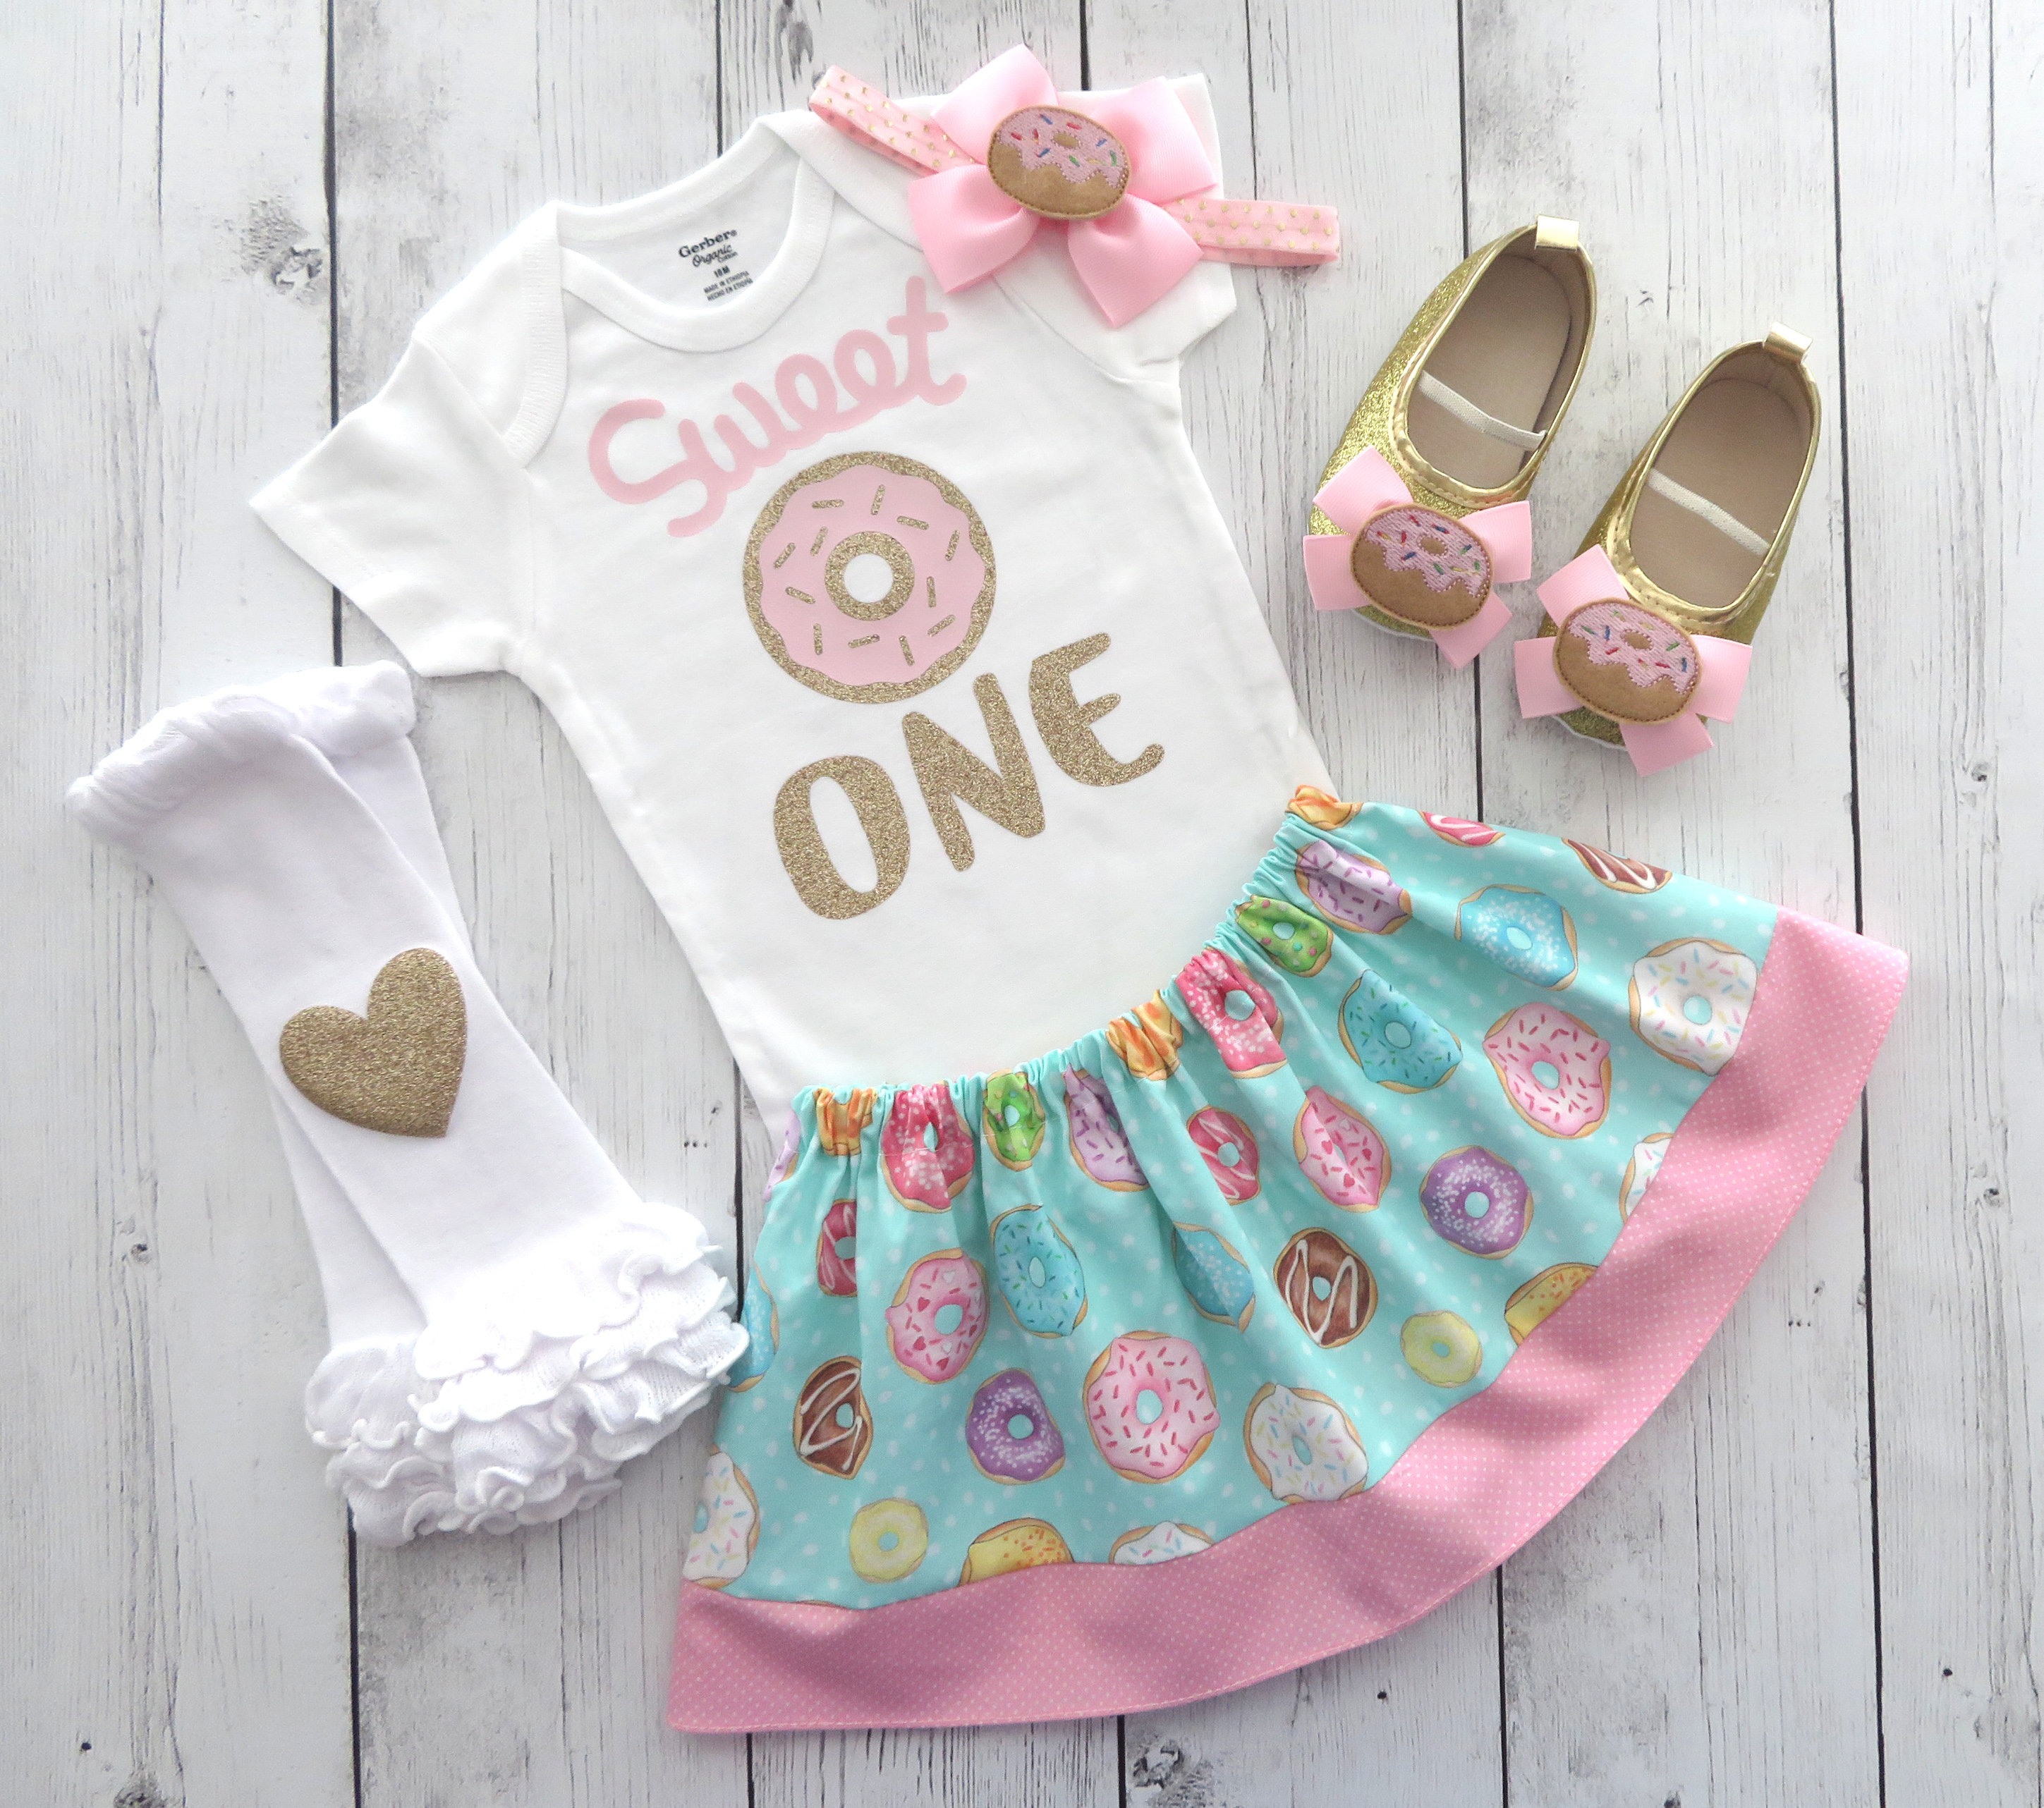 Donut First Birthday Outfit for baby girl - donut grow up outfit, sweet one, donut first birthday party, donut 1st bday outfit, donut shoes